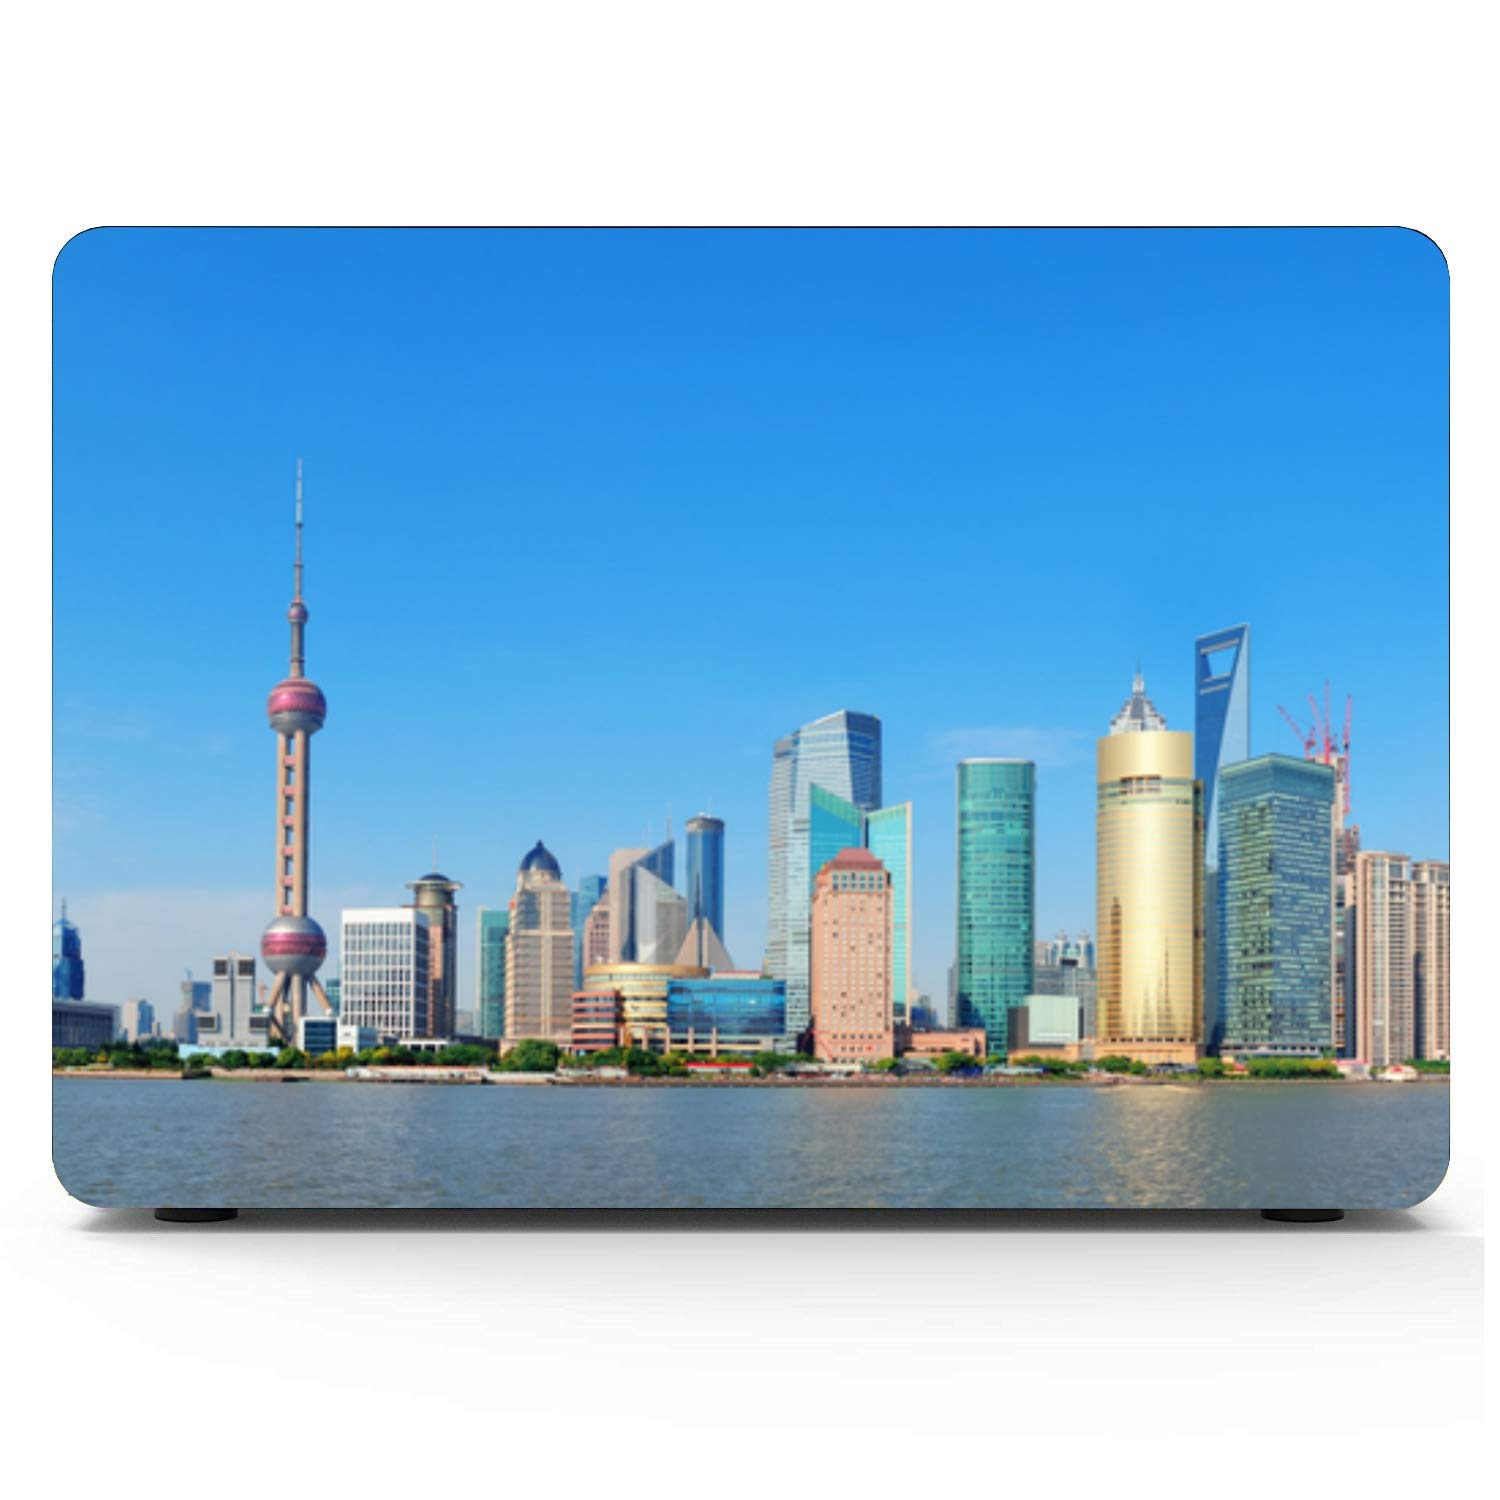 MacBook Air Computer Case Sign Travel Building Oriental Pearl Plastic Hard Shell Compatible Mac Air 11 Pro 13 15 Accessories for MacBook Pro Protection for MacBook 2016-2019 Version